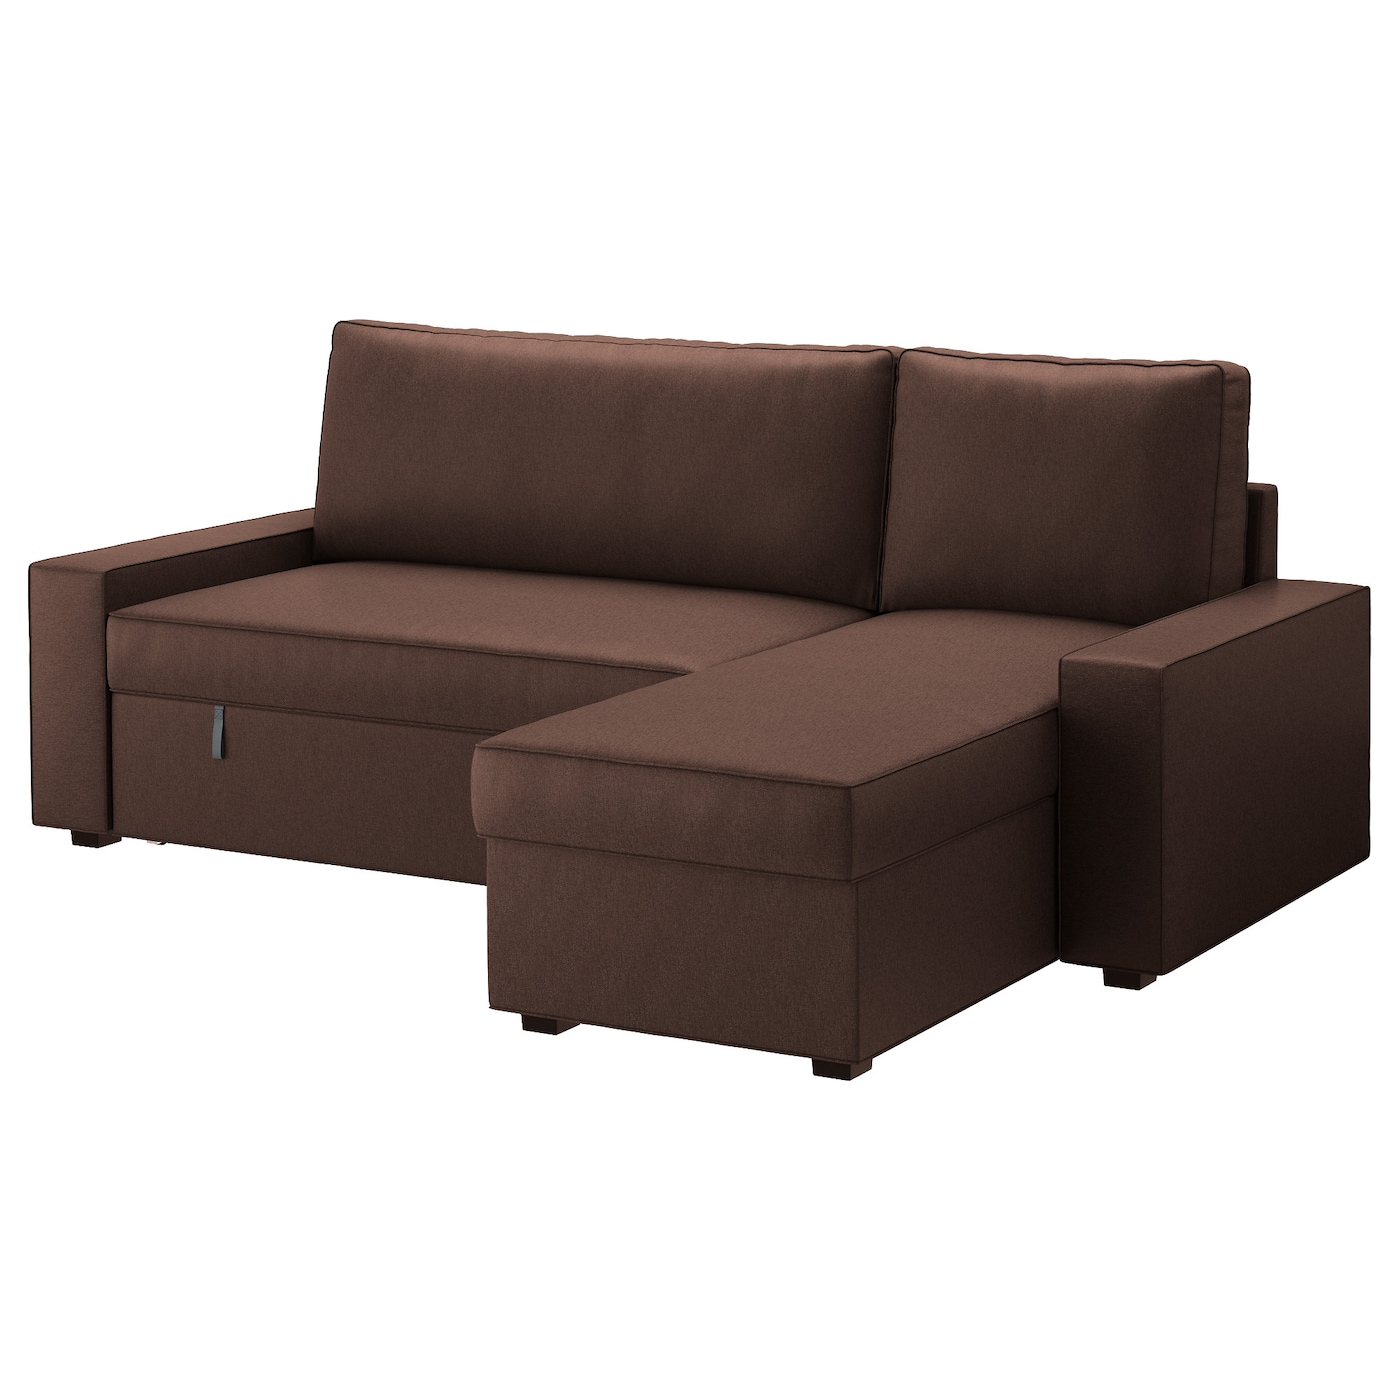 Vilasund sofa bed with chaise longue borred dark brown ikea for Sofas con chaise longue